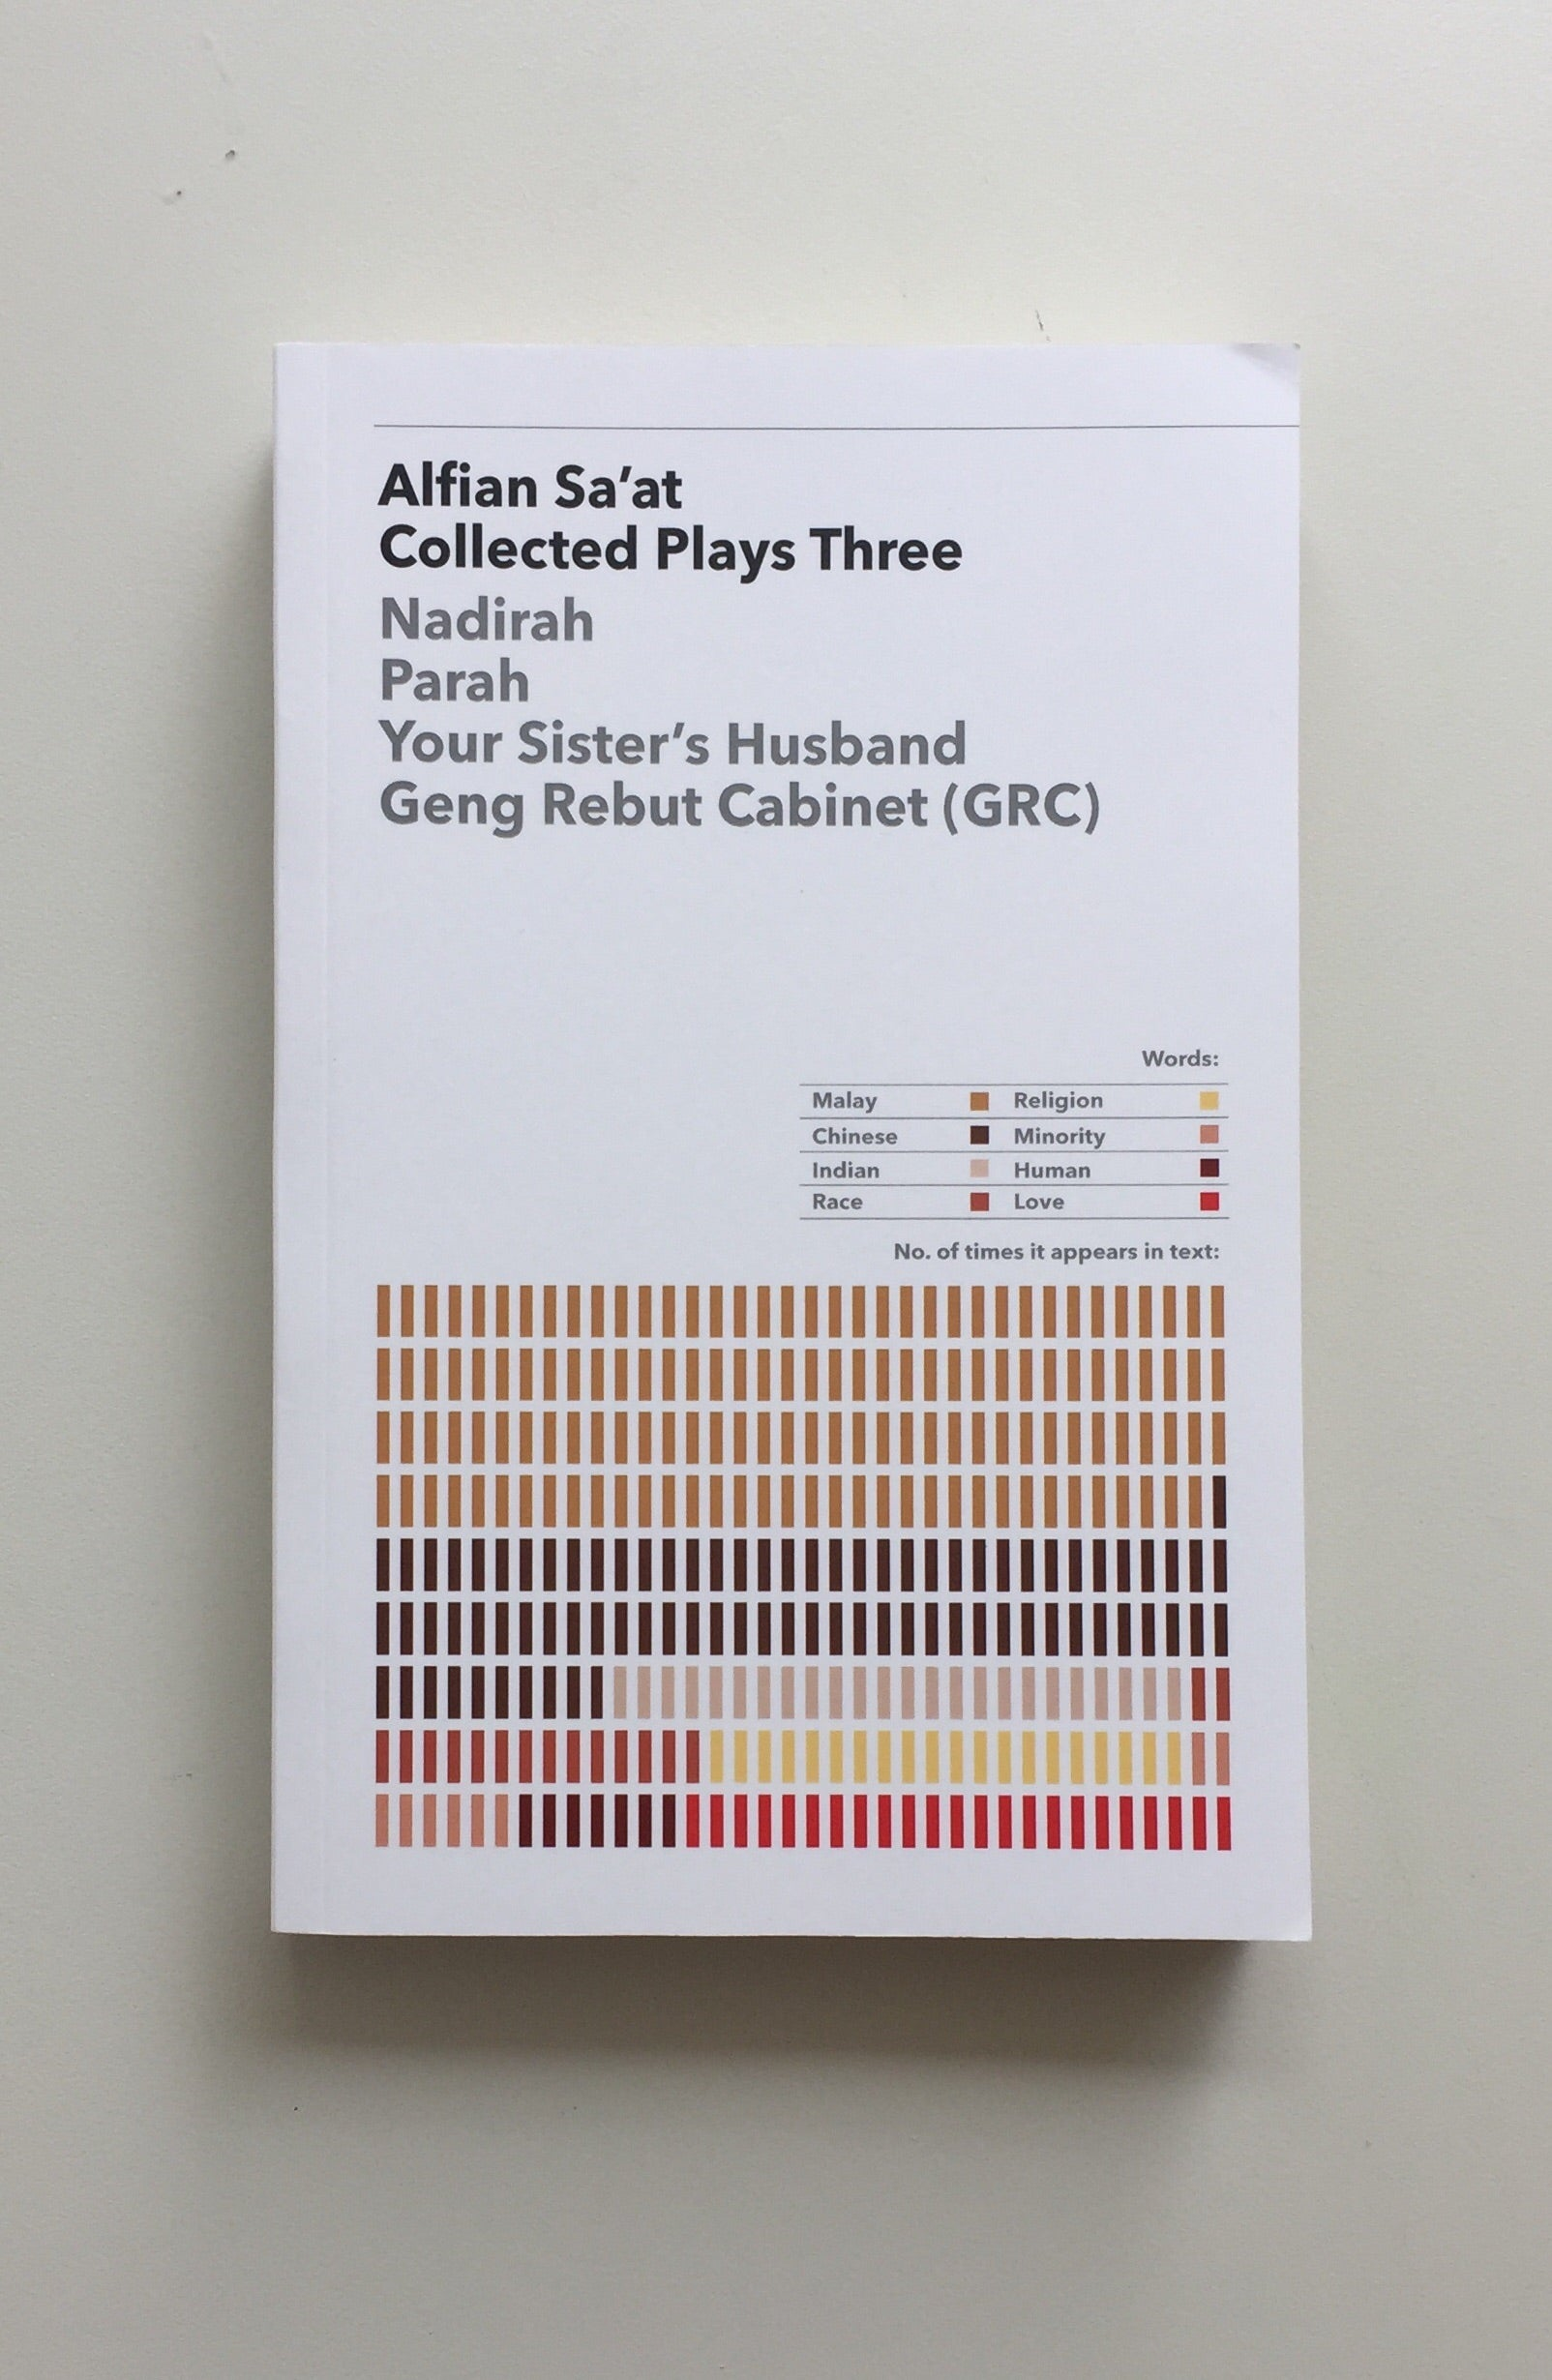 Collected Plays Three by Alfian Sa'at